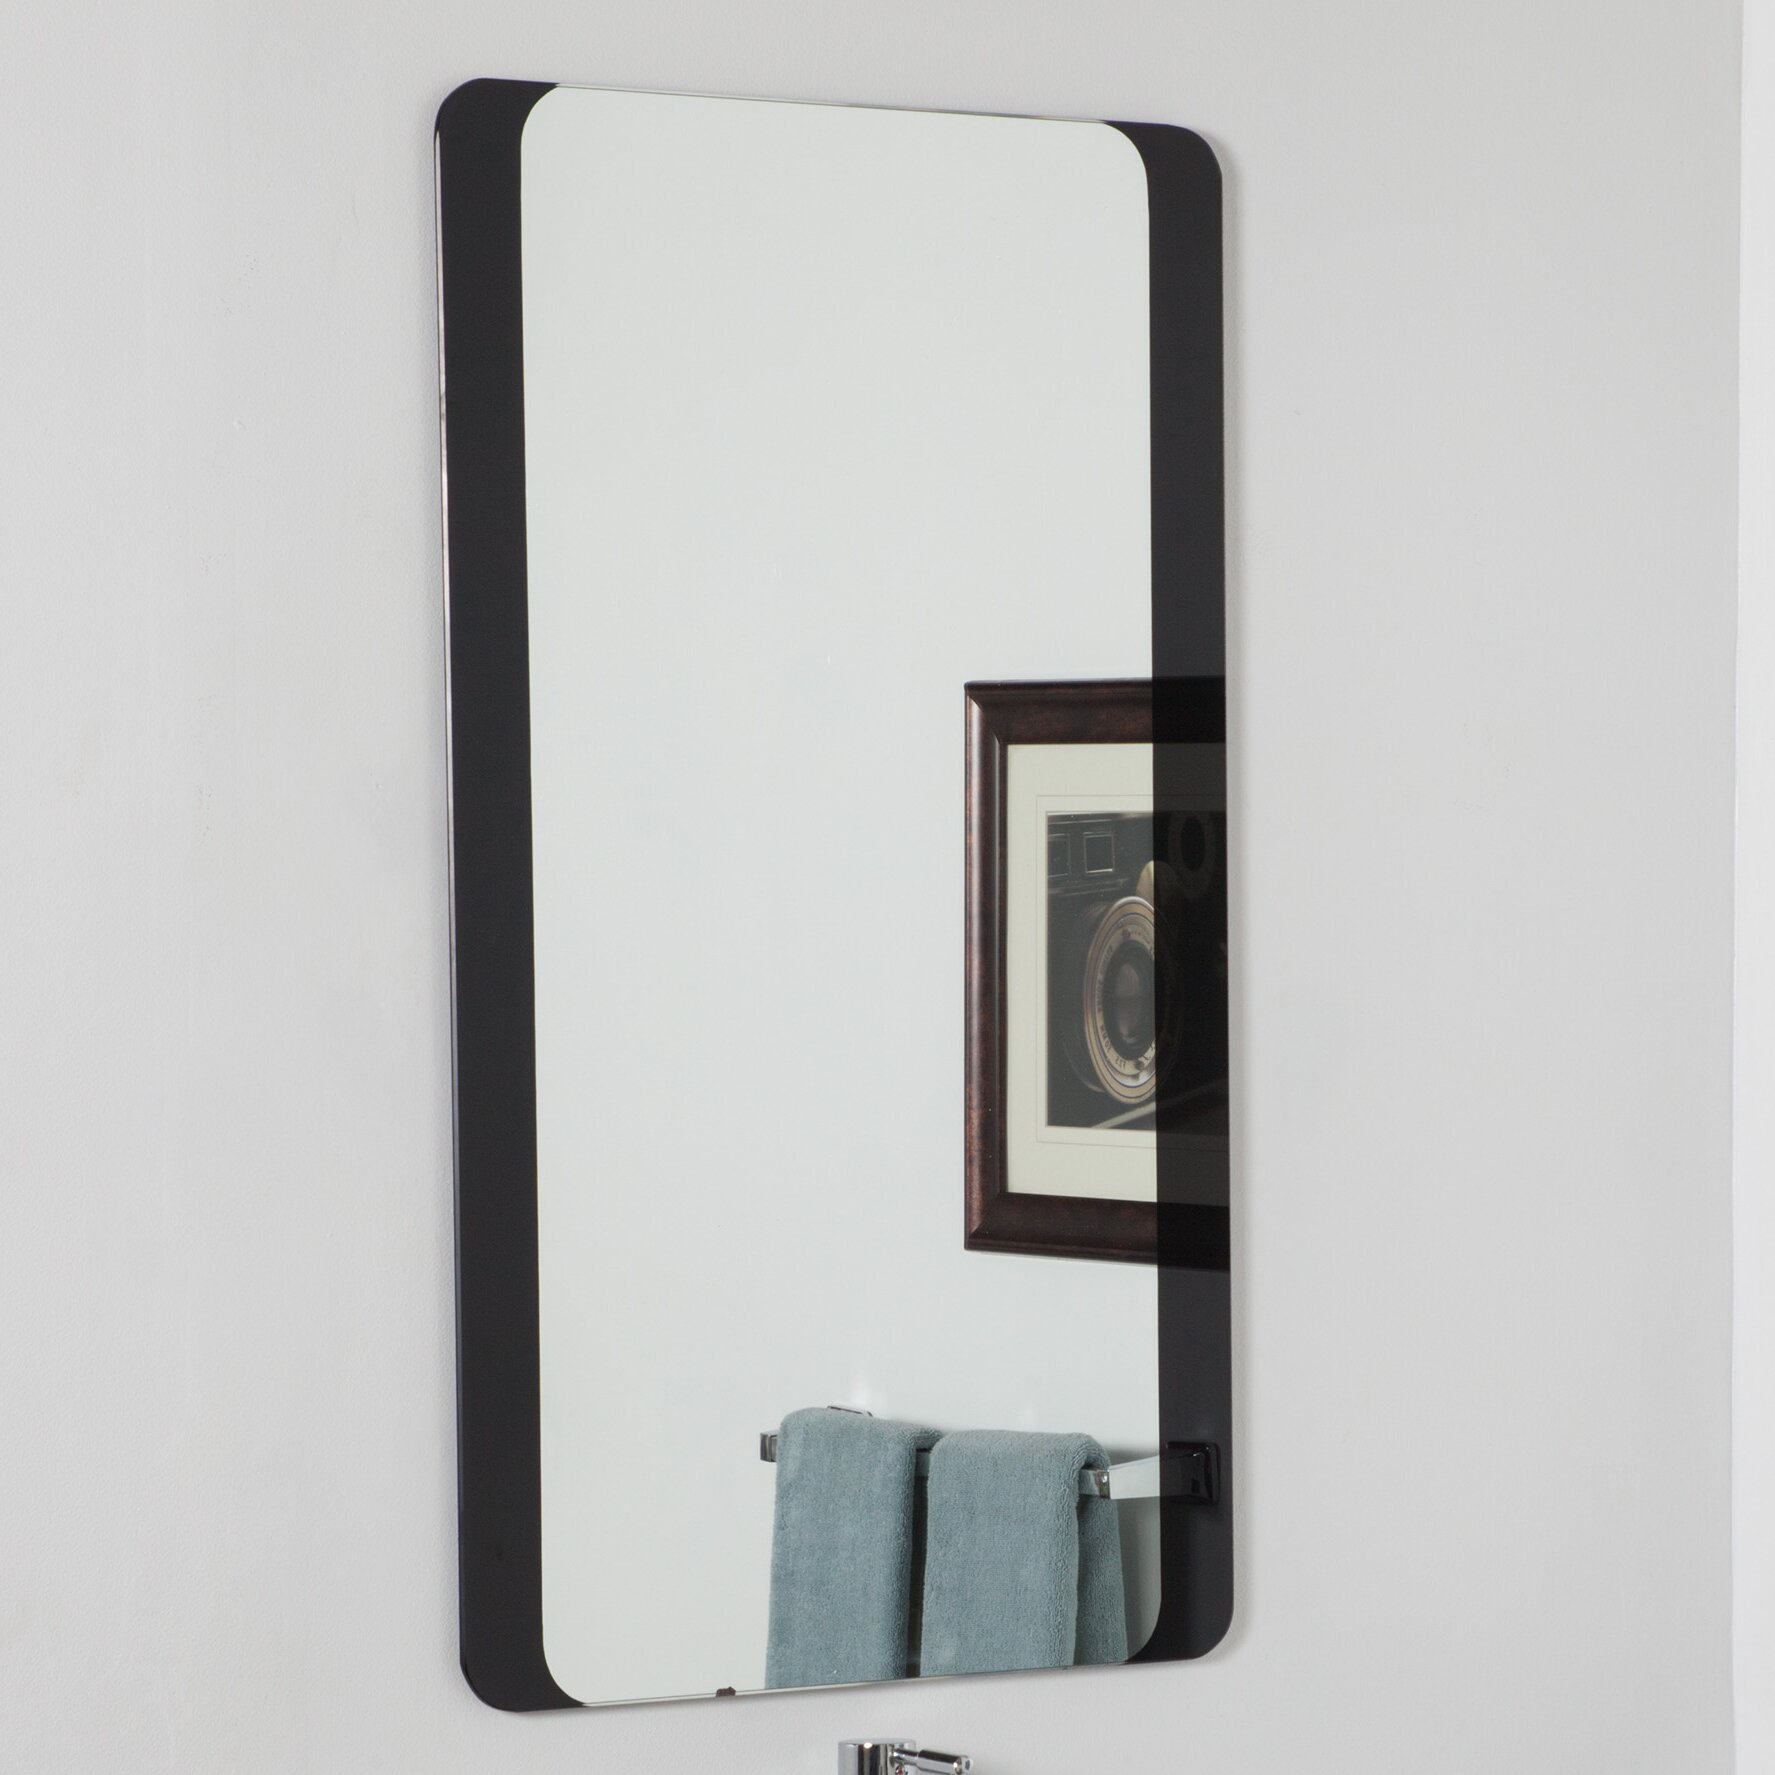 Decor wonderland large wall mirror reviews wayfair for Decor mirror